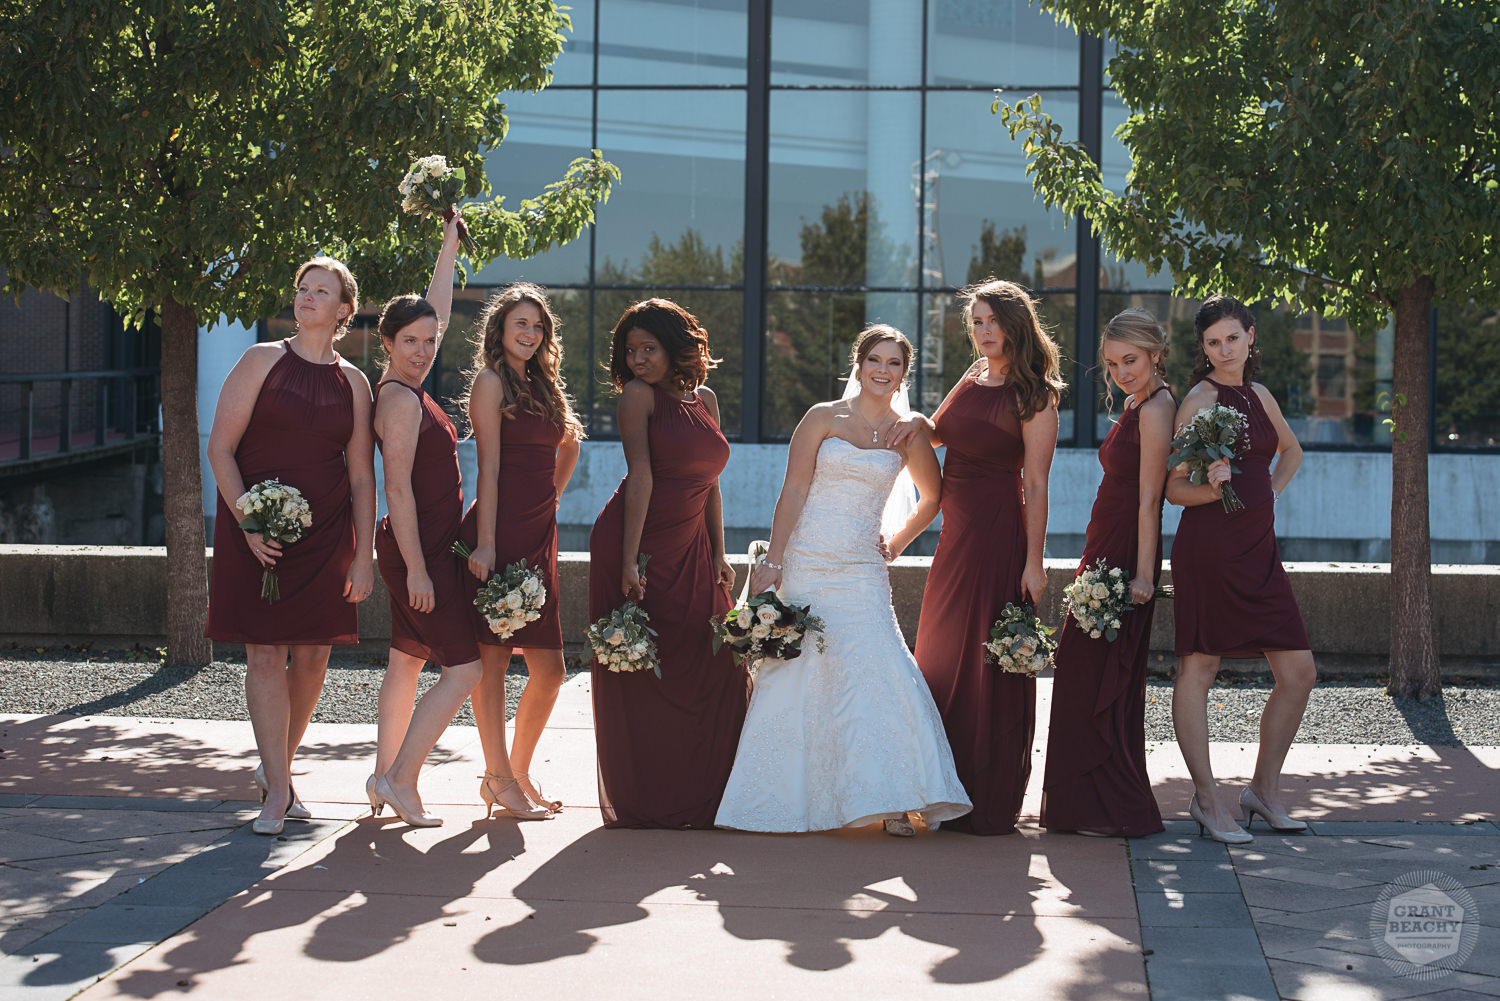 Grant Beachy wedding photographer, south bend, elkhart, chicago-30.jpg